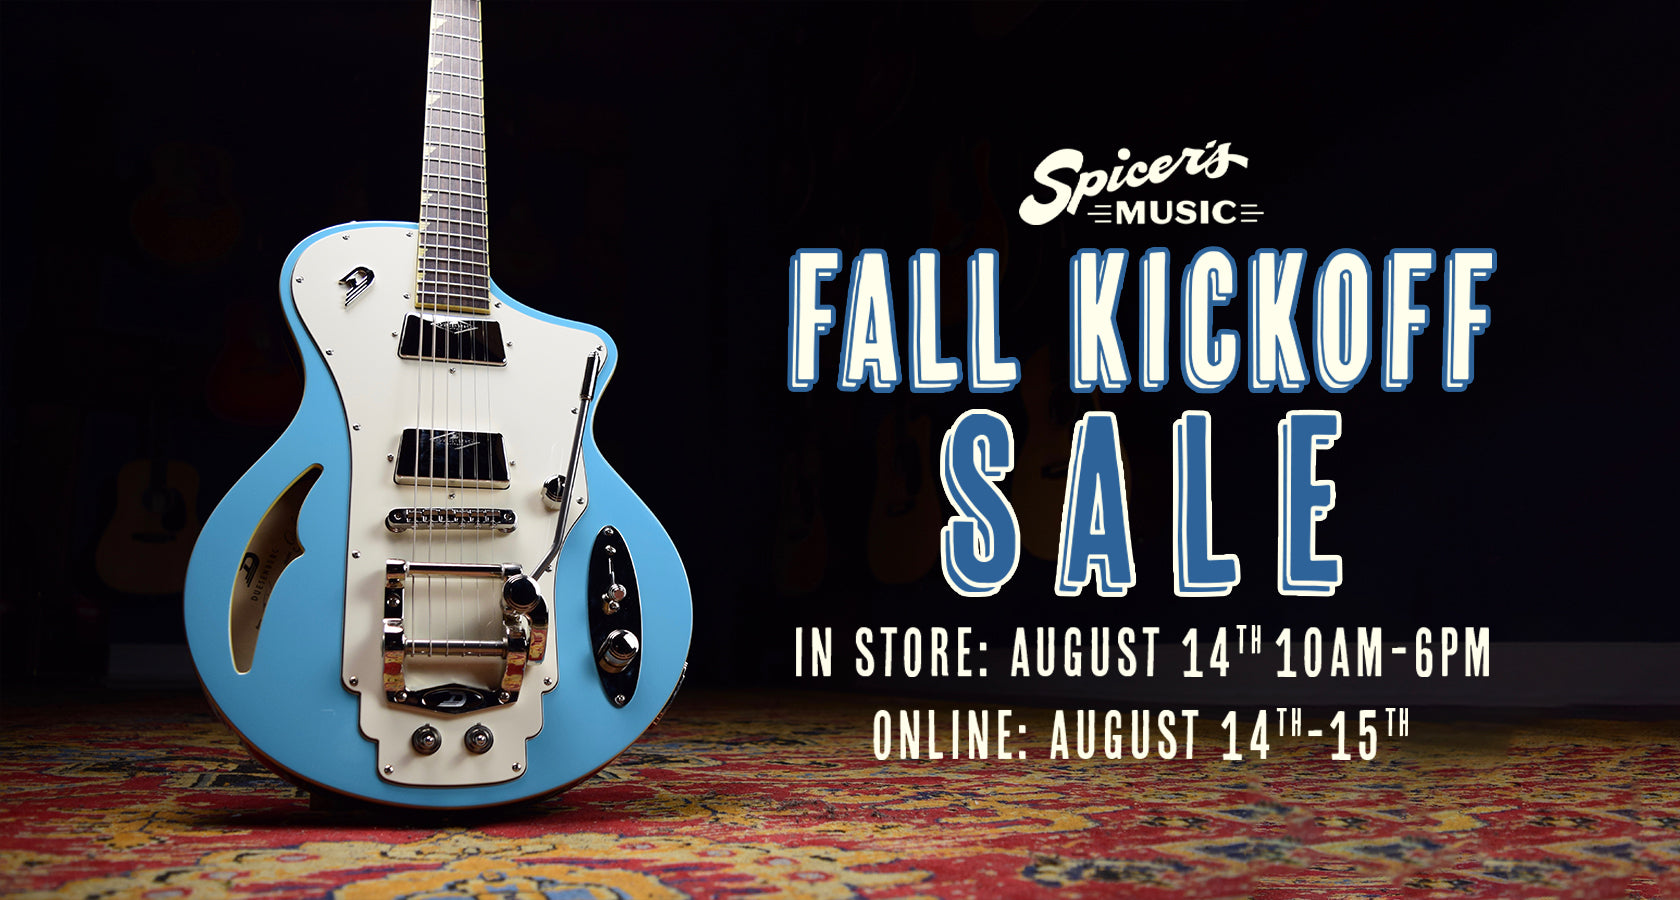 Spicer's Music Fall Kickoff Sale 2021